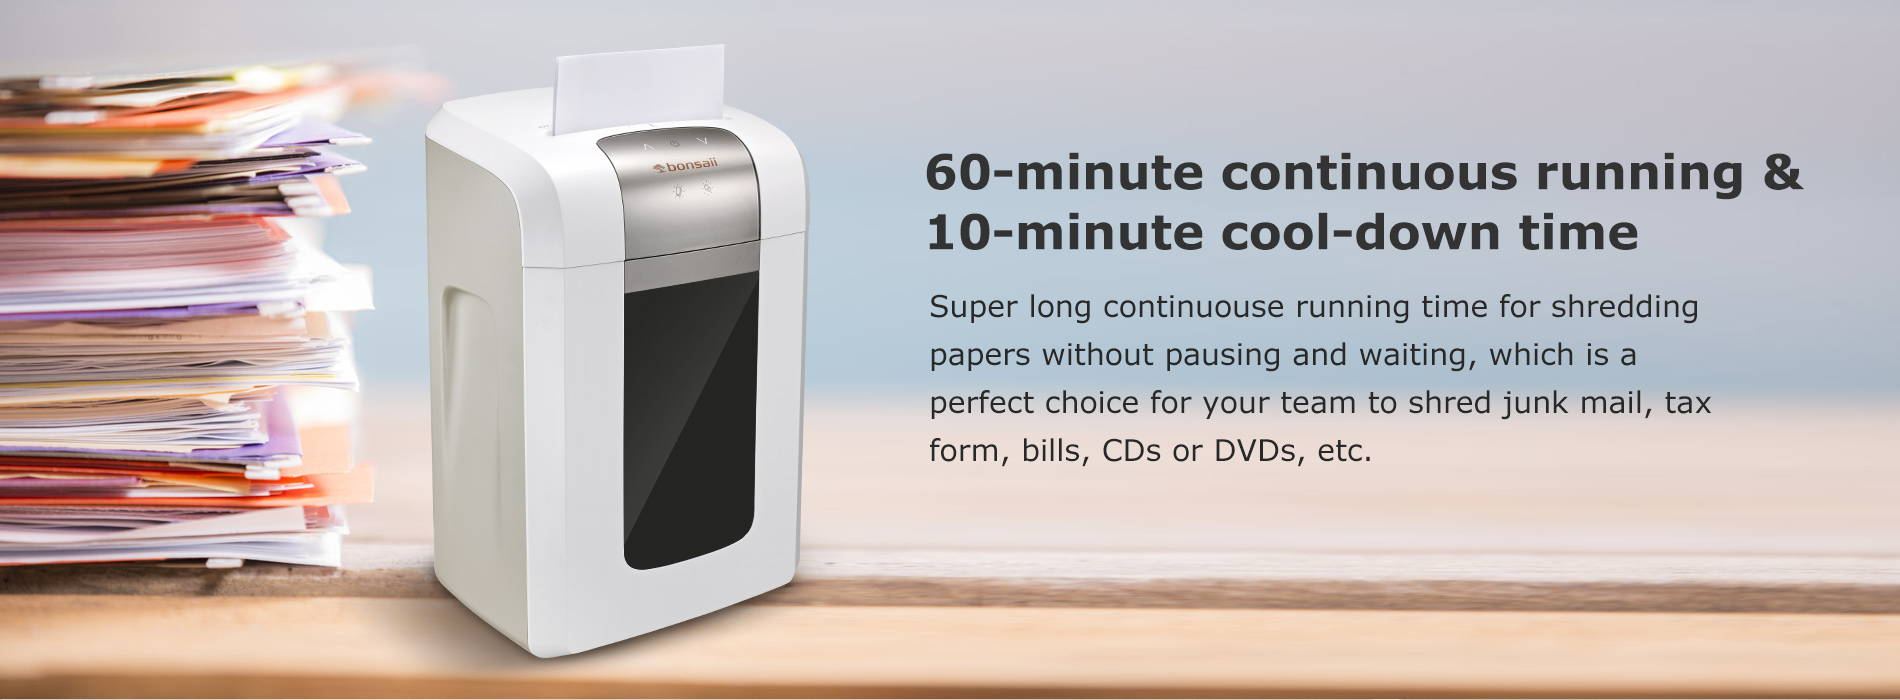 60-minute continuous running & 10-minute cool-down time  Super long continuouse running time for shredding papers without pausing and waiting, which is a perfect choice for your team to shred junk mail, tax form, bills, CDs or DVDs, etc.